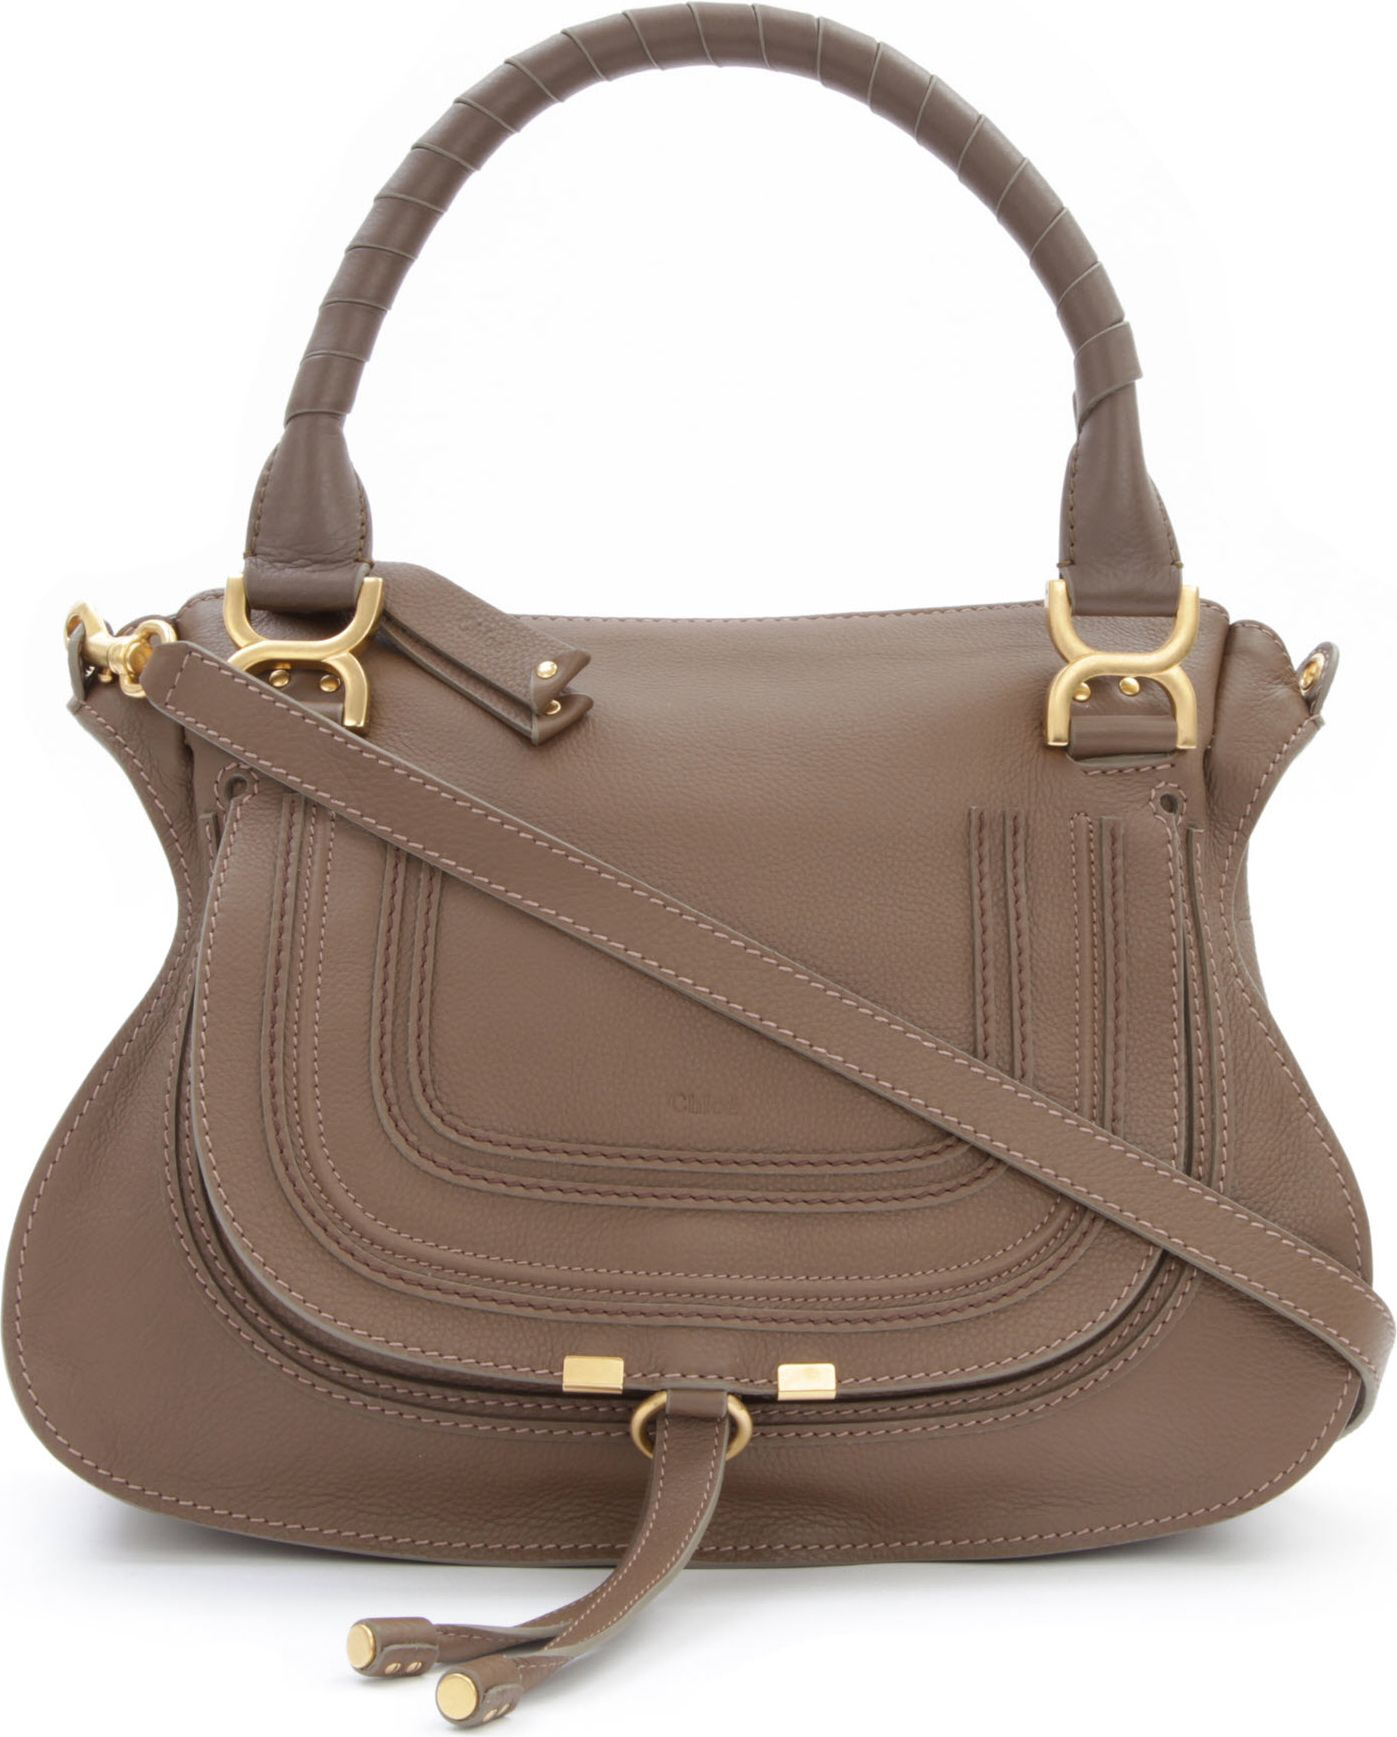 Chloé Marcie Medium Shoulder Bag in Brown | Lyst